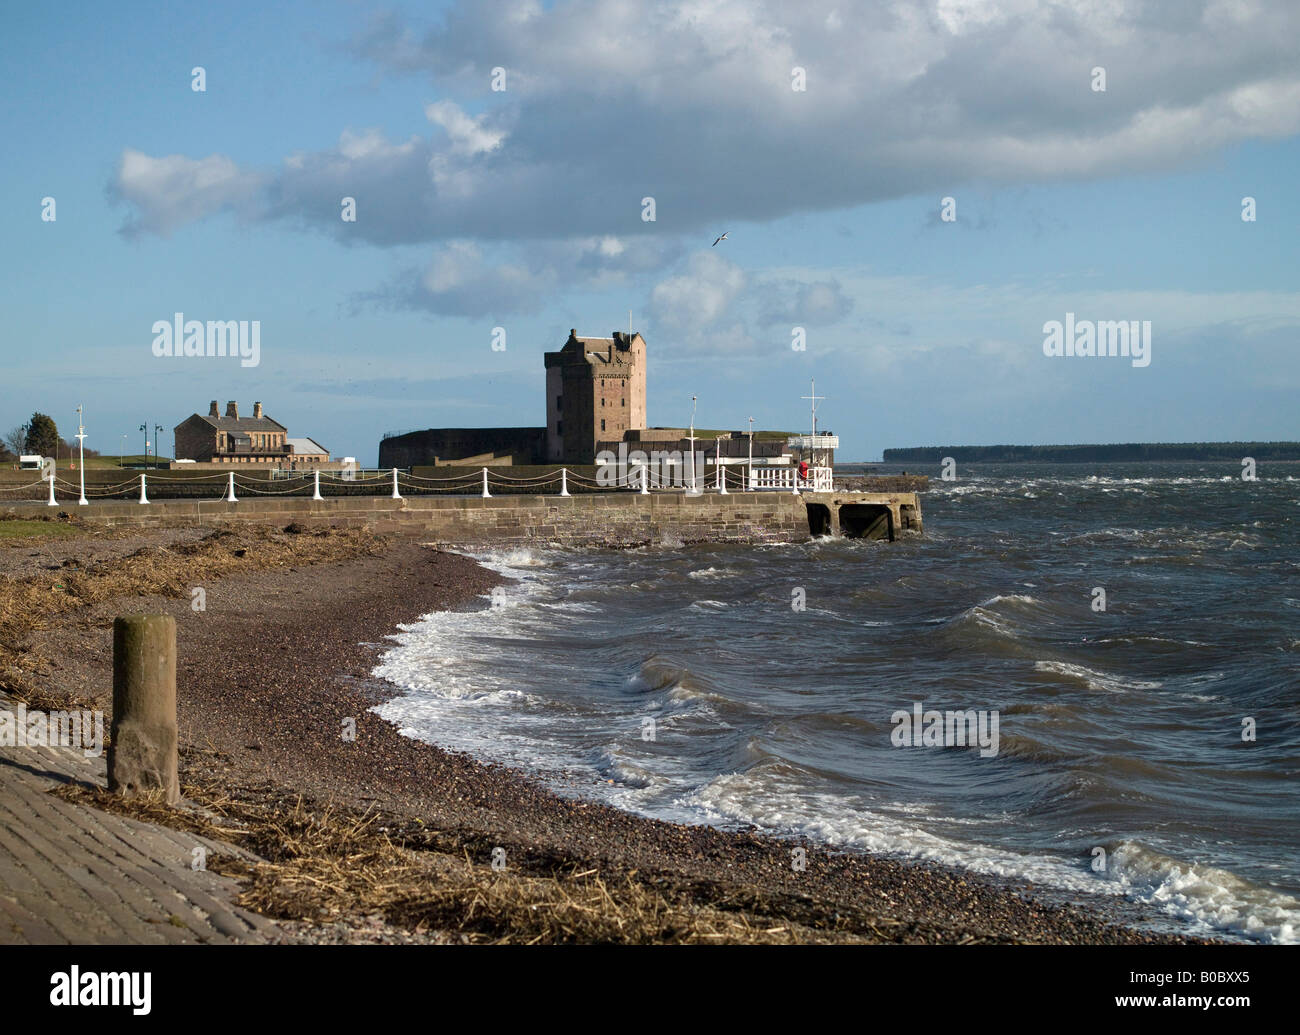 Broughty Ferry, and Castle, Dundee, Tayside, Scotland - Stock Image